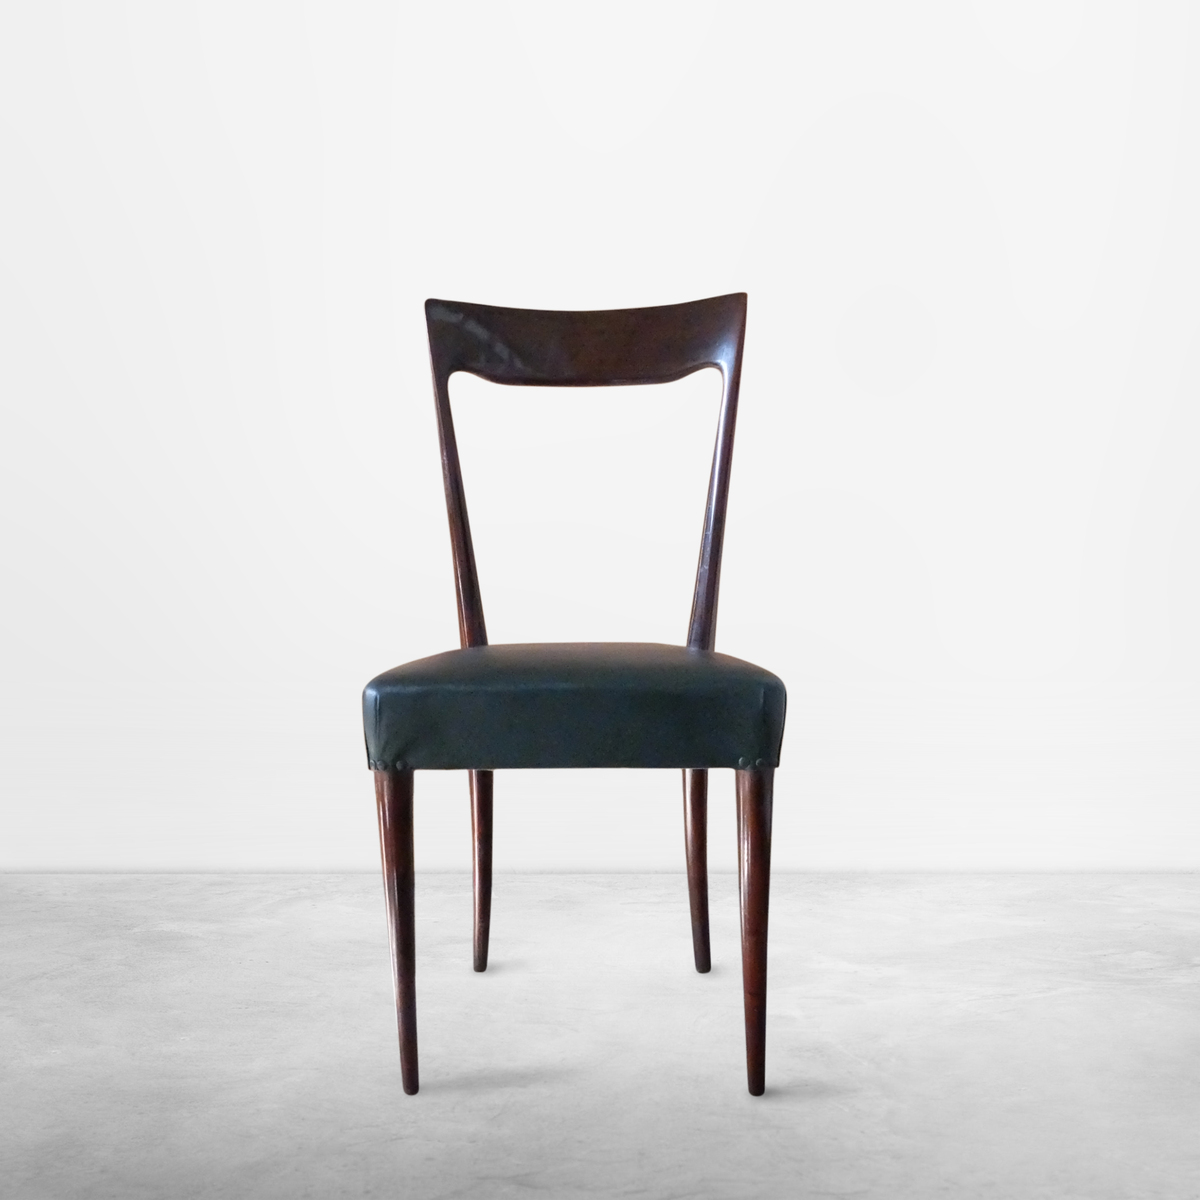 Ico Parisi, Italian Mid-Century Set of 6 Wood and Leather Chairs, circa 1940